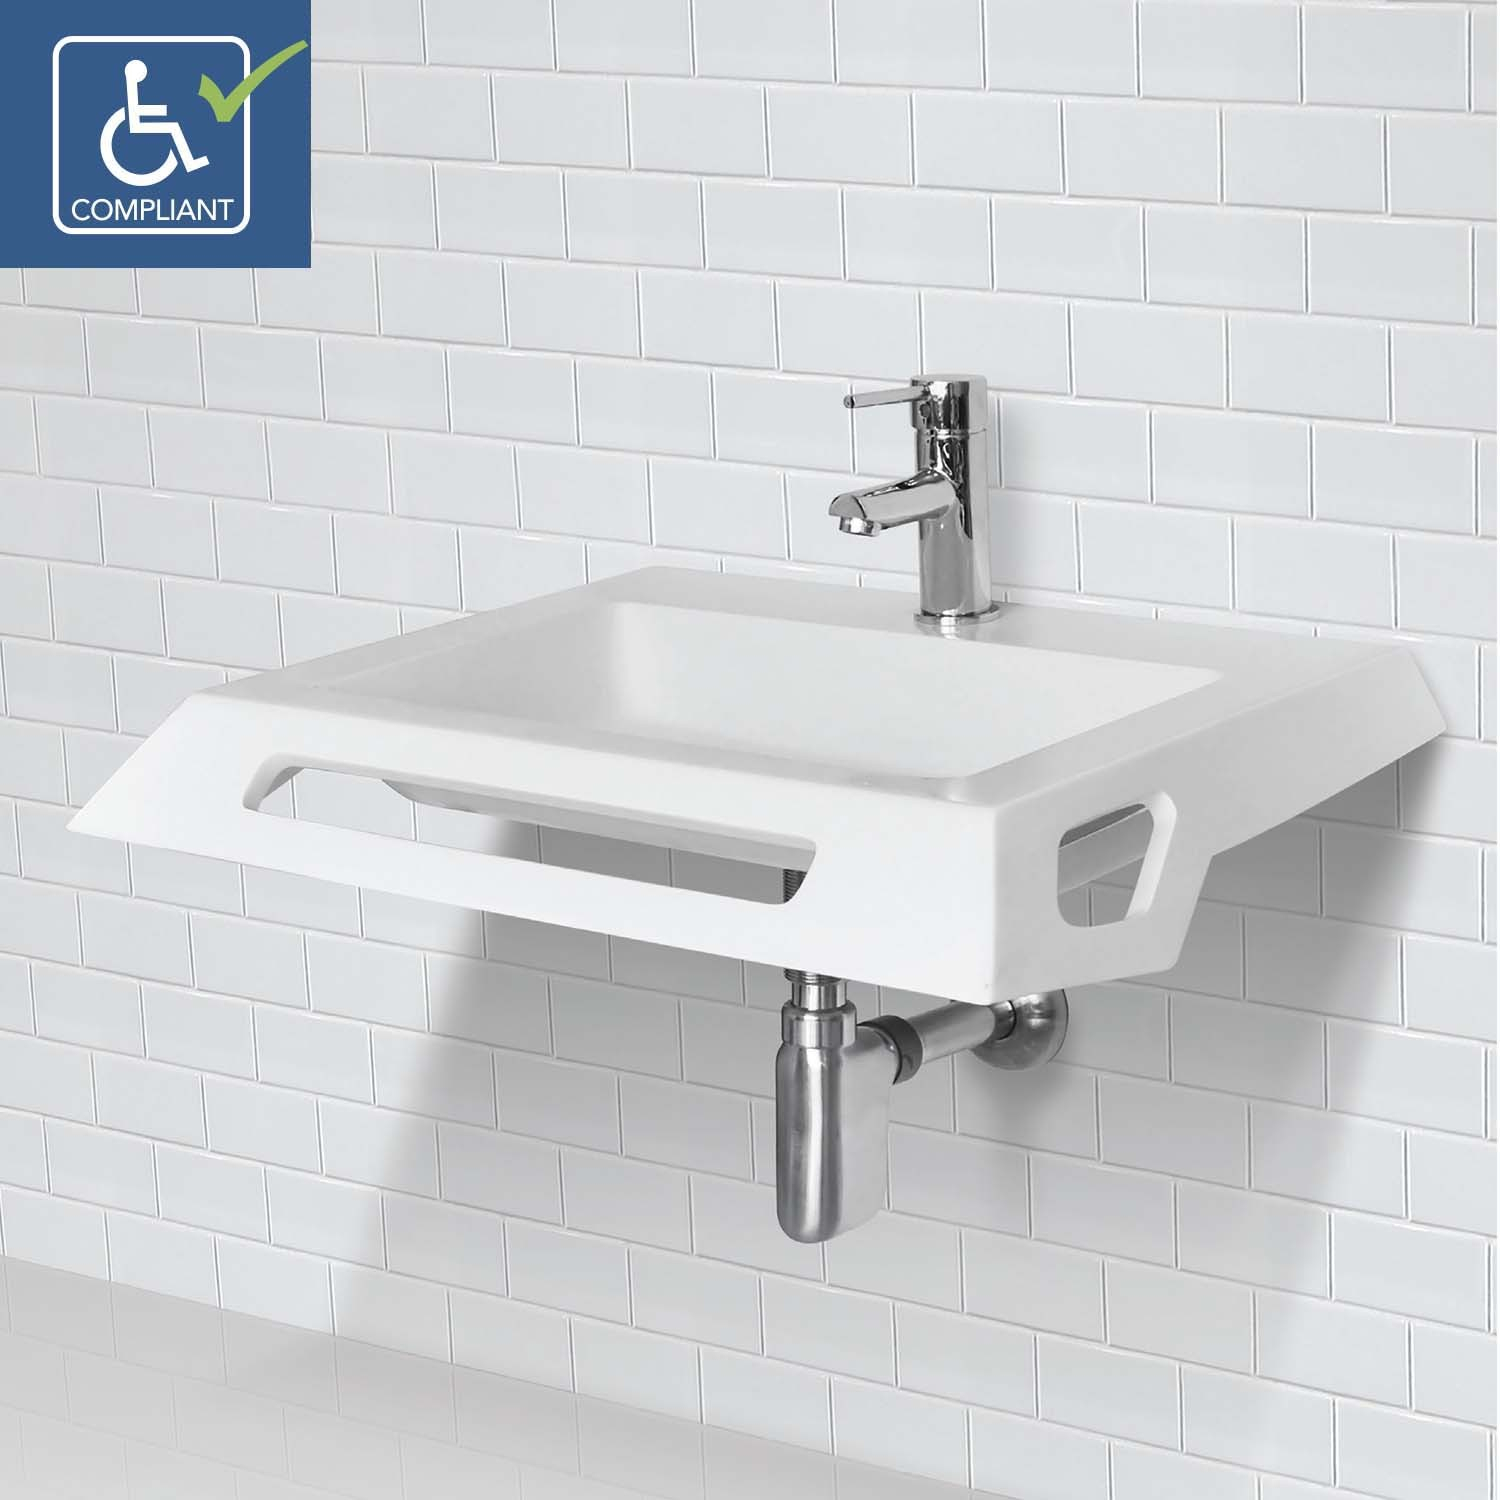 Cool Decolav Lexine 1833-Ssa - Solid Surface Ada Compliant Wall-Mount intended for Ada Compliant Bathroom Sink